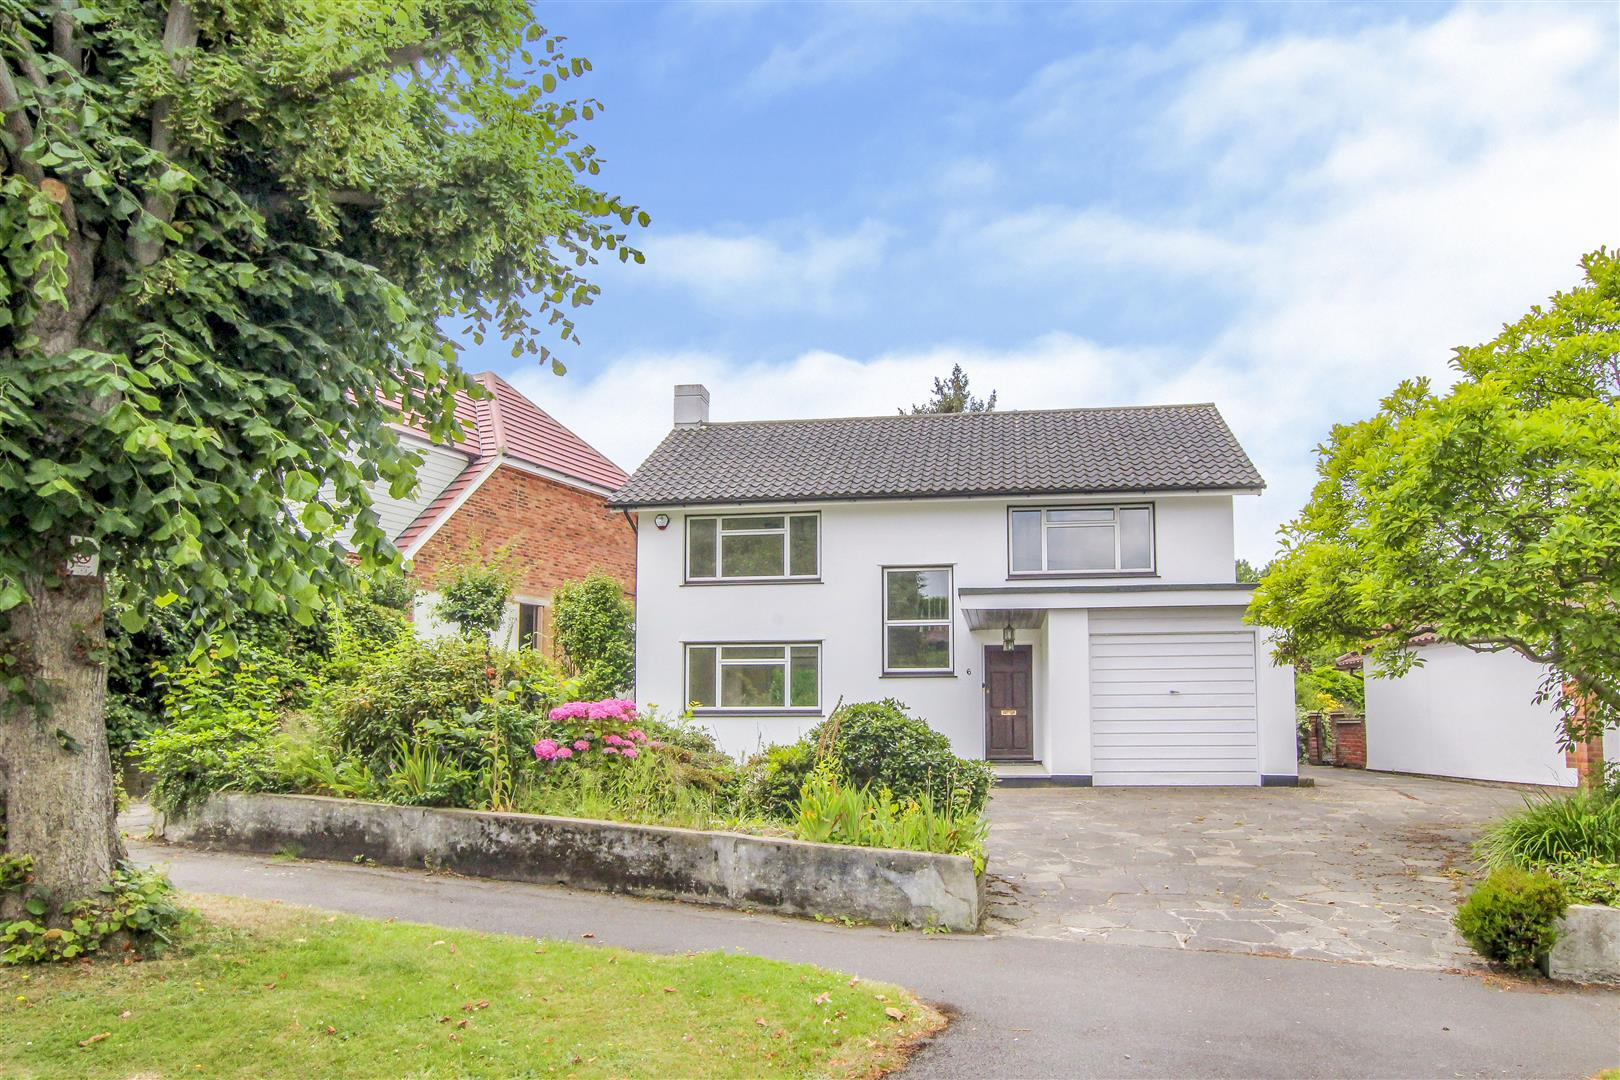 South Weald Road, Brentwood